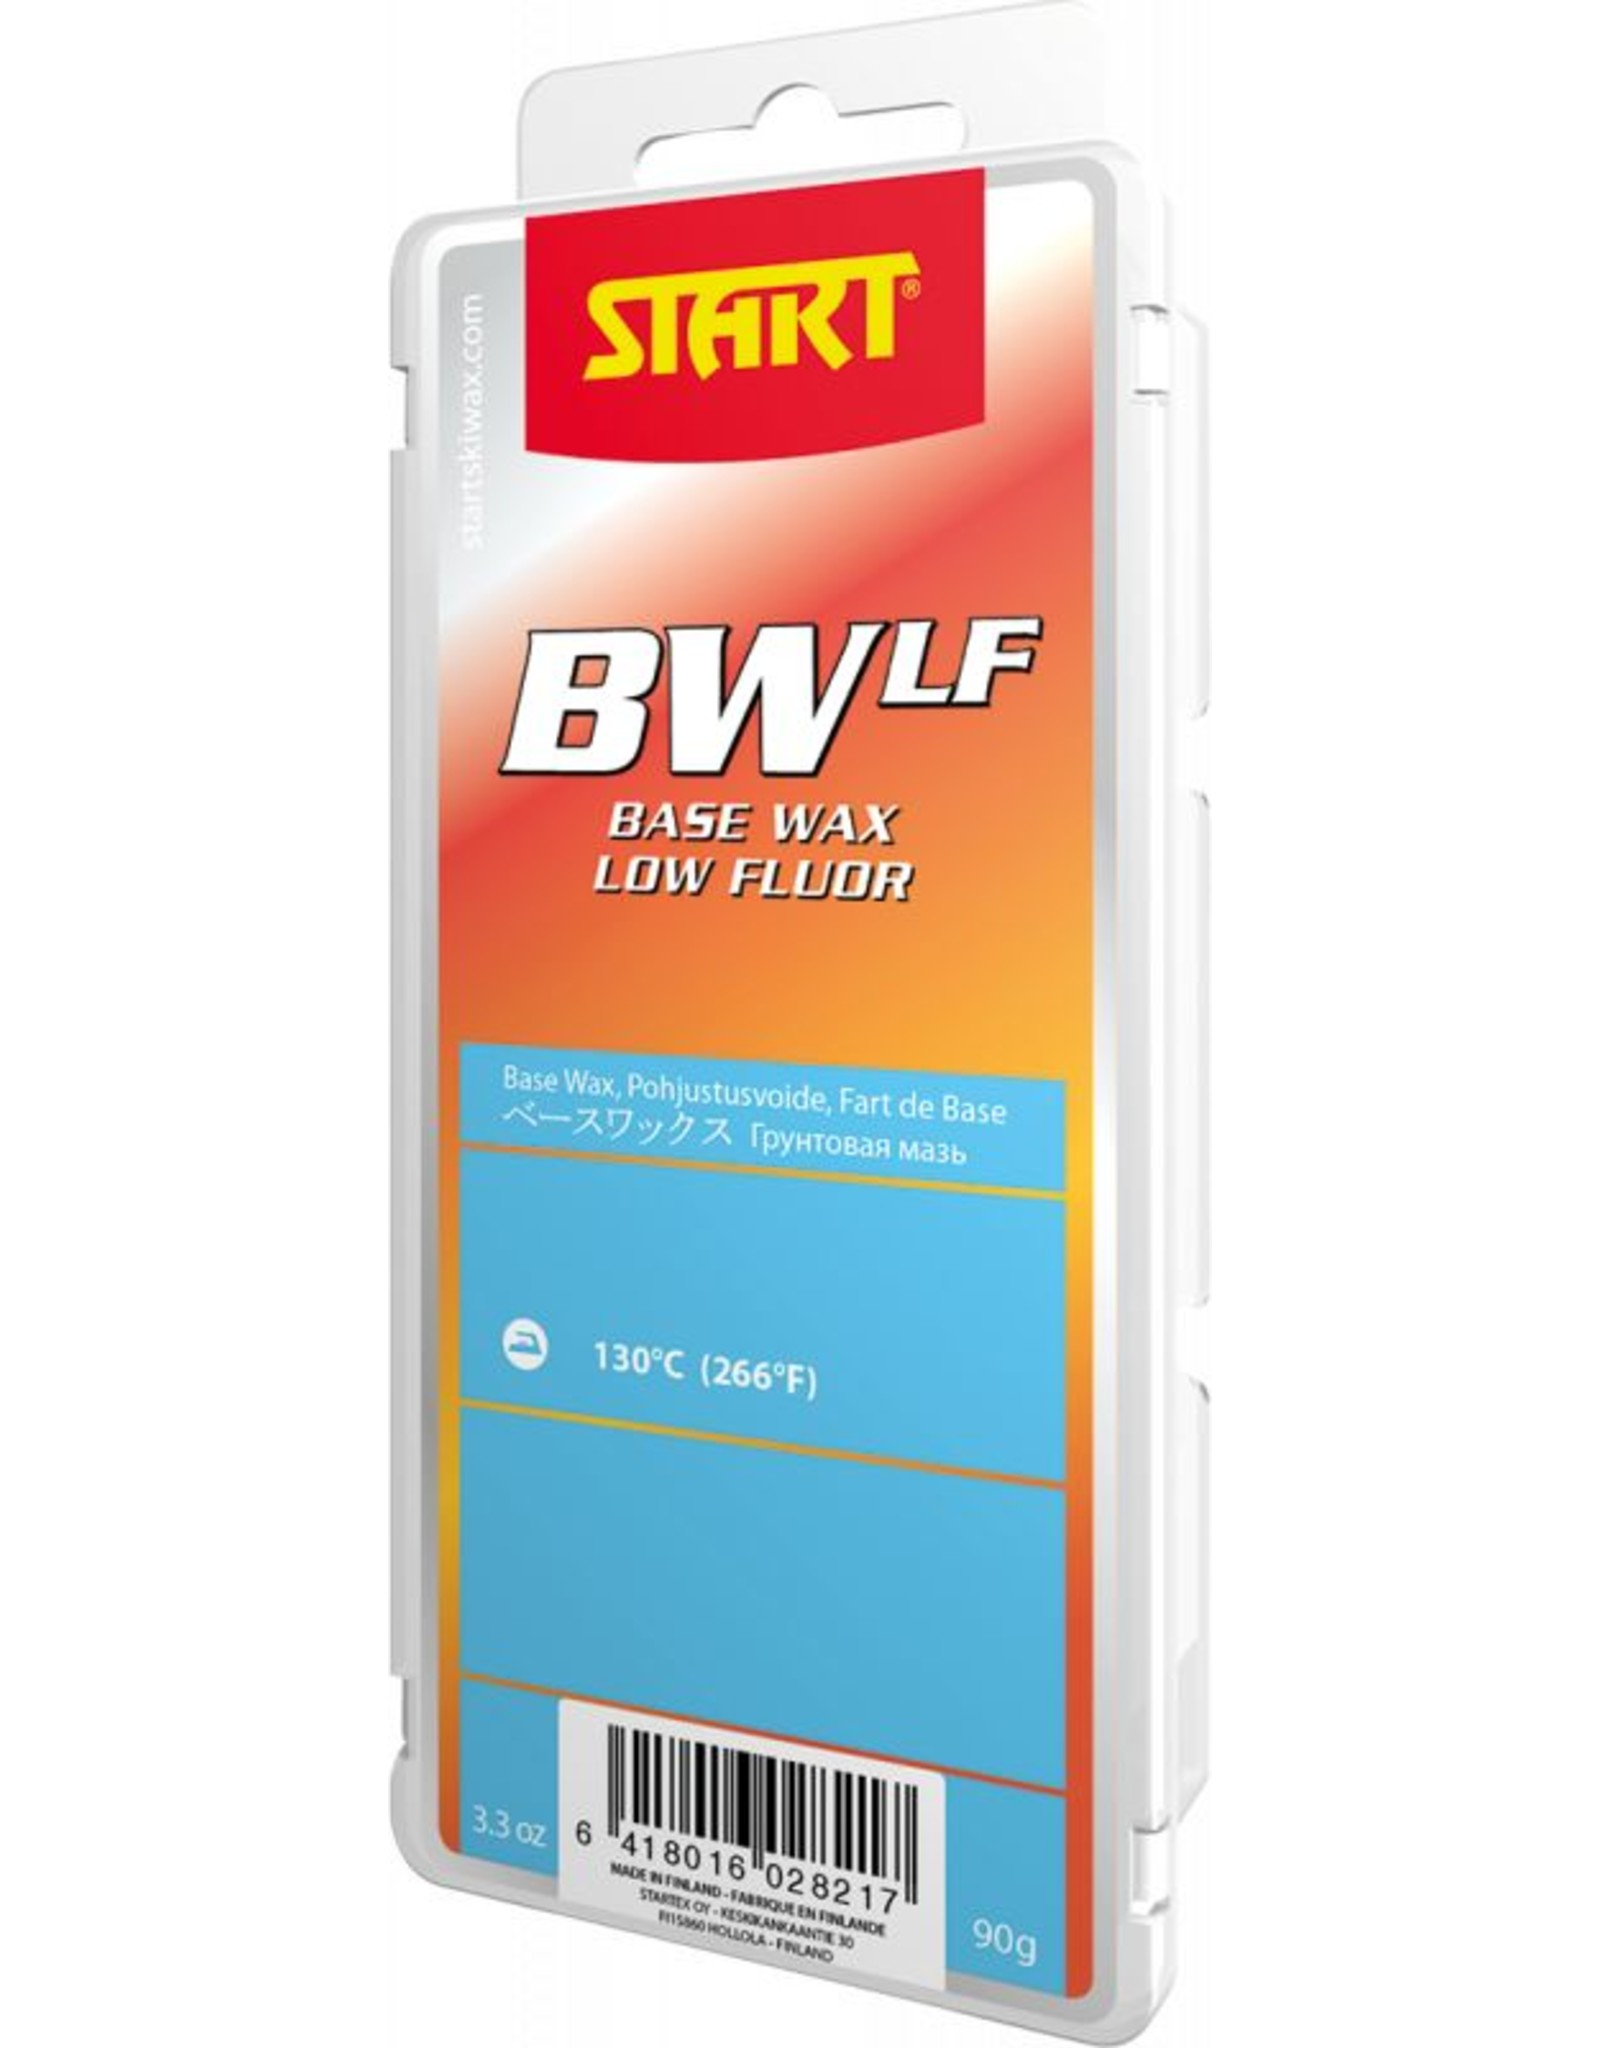 Start BWLF Fluorinated Base Wax 180g